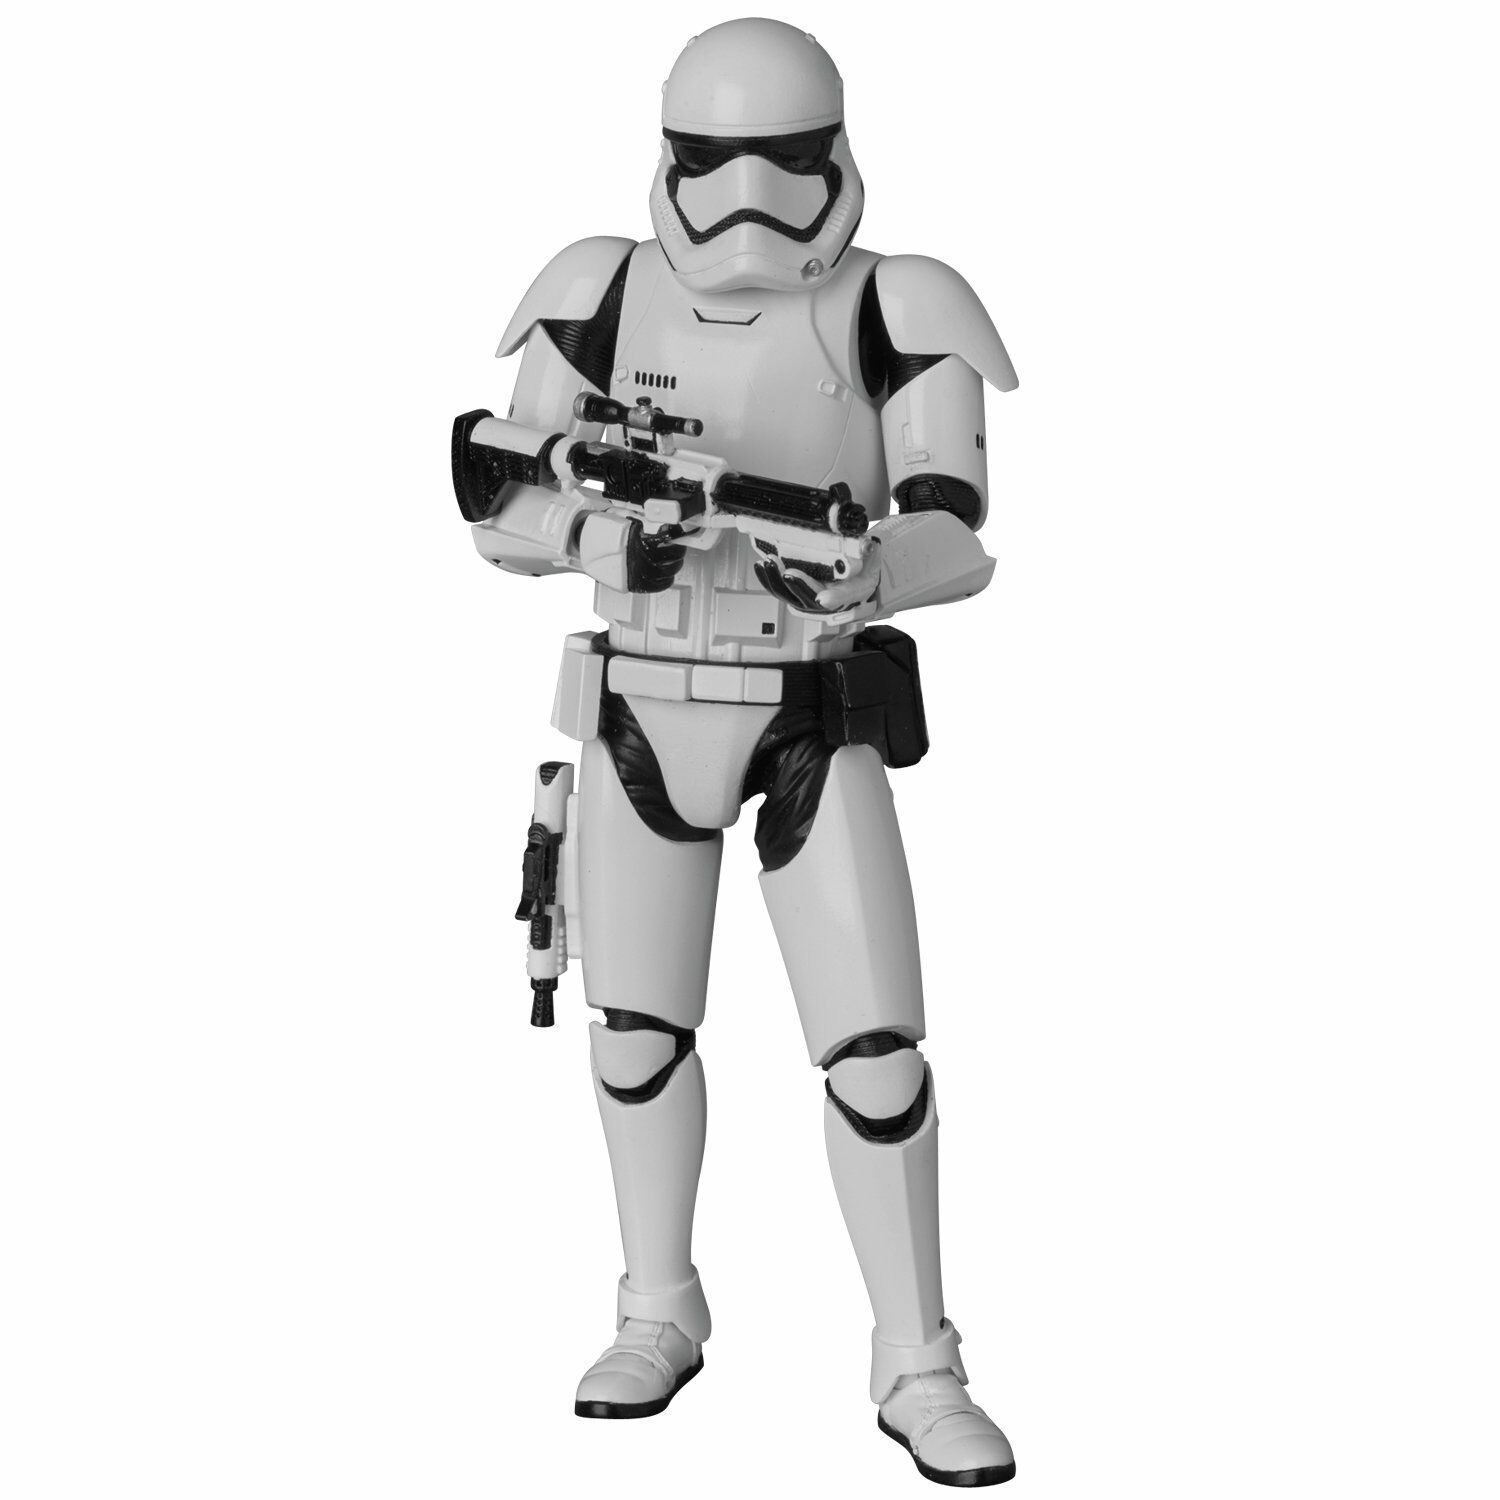 MEDICOM TOY MAFEX Star Wars FIRST ORDER STORMTROOPER Action Figure (JAPAN)